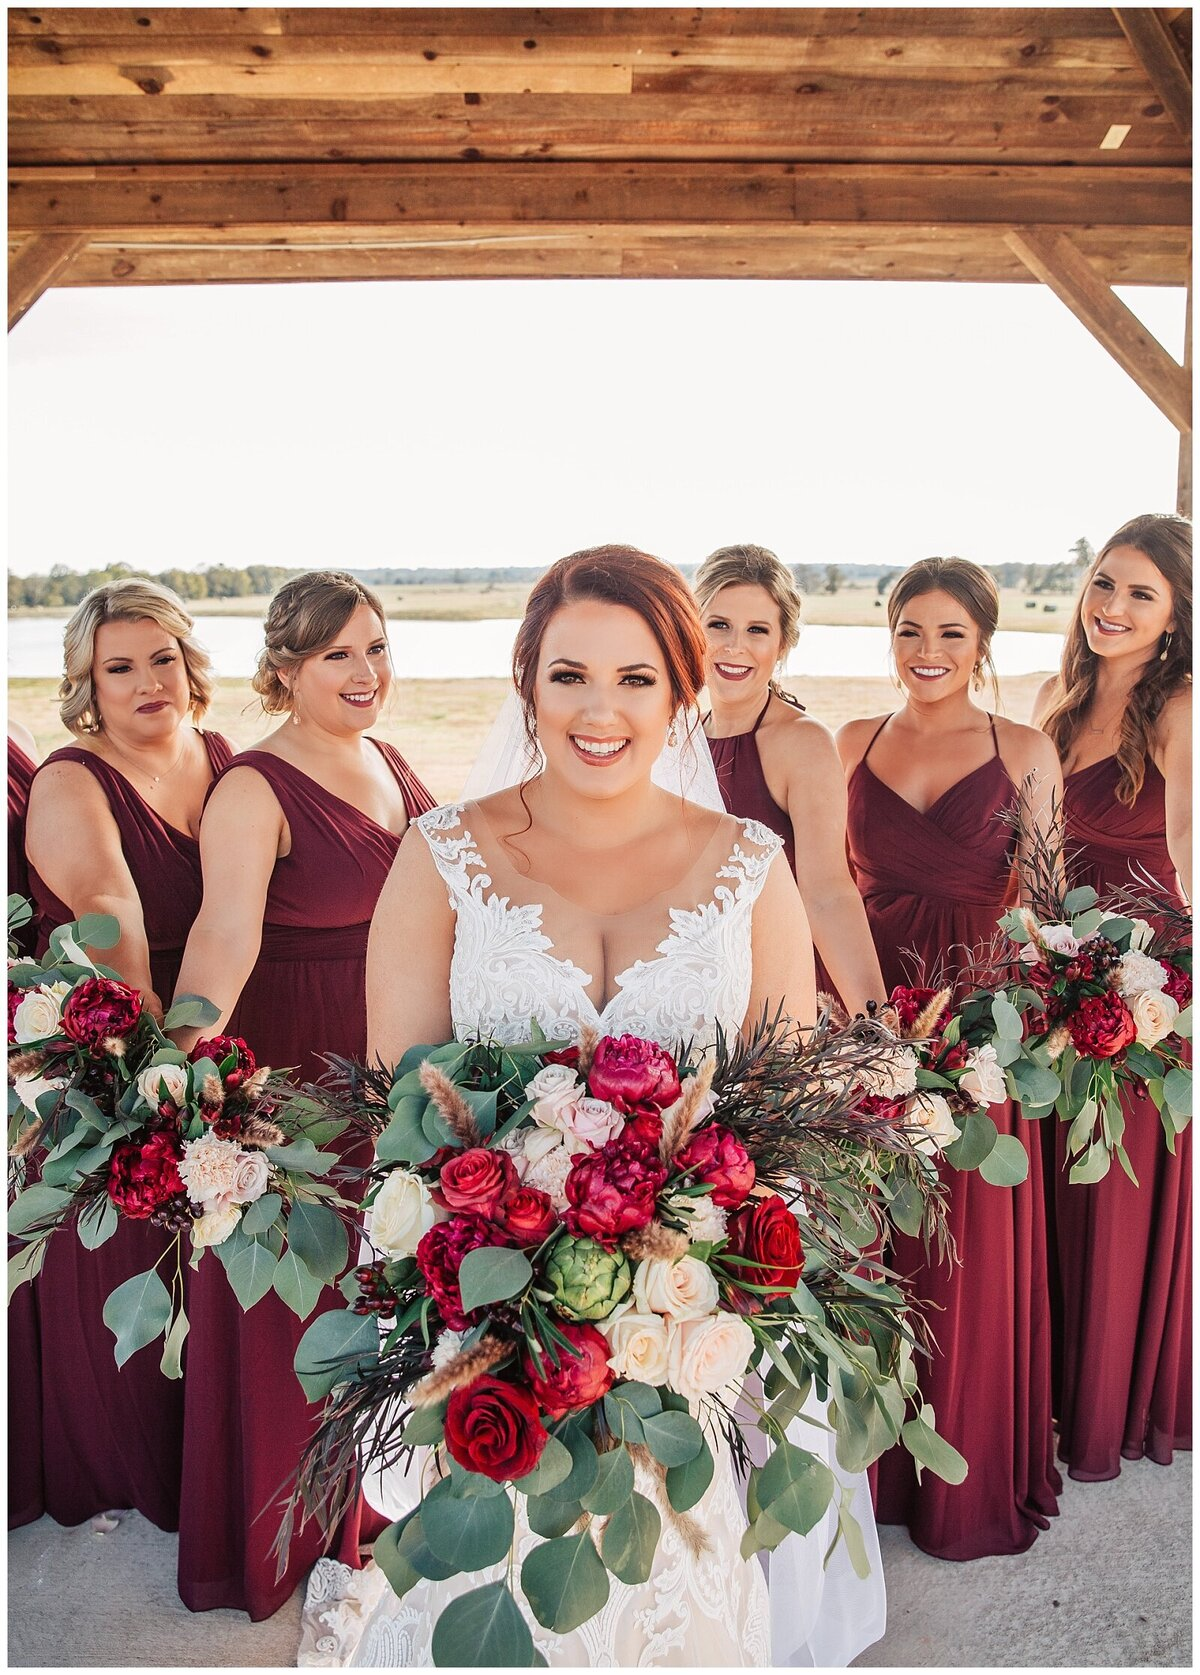 Rustic Burgundy and Blush Indoor Outdoor Wedding at Emery's Buffalo Creek - Houston Wedding Venue_0666